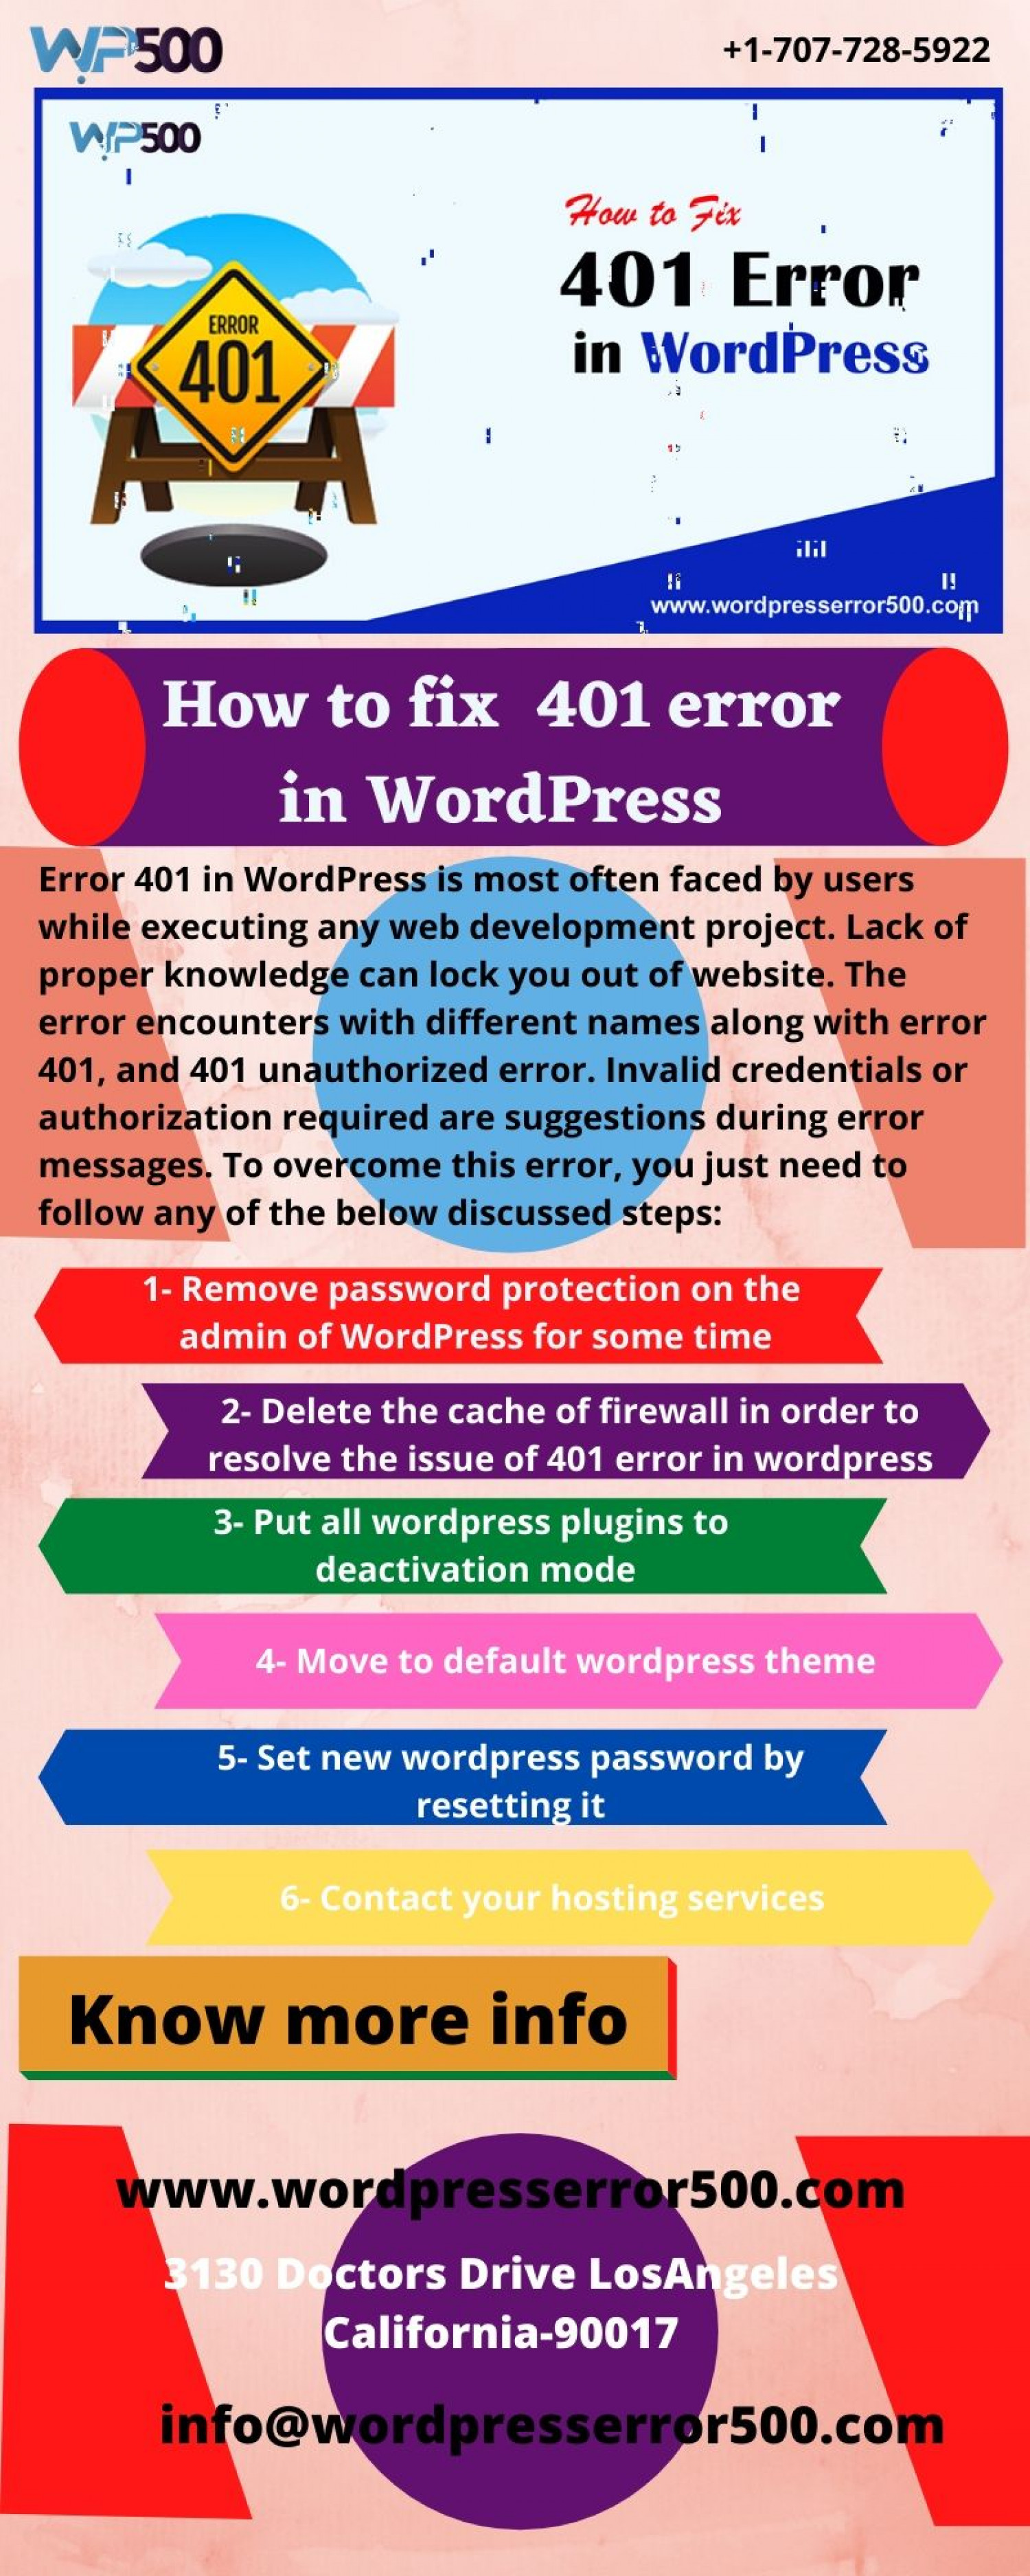 How can I fix the 401 error in WordPress  Infographic